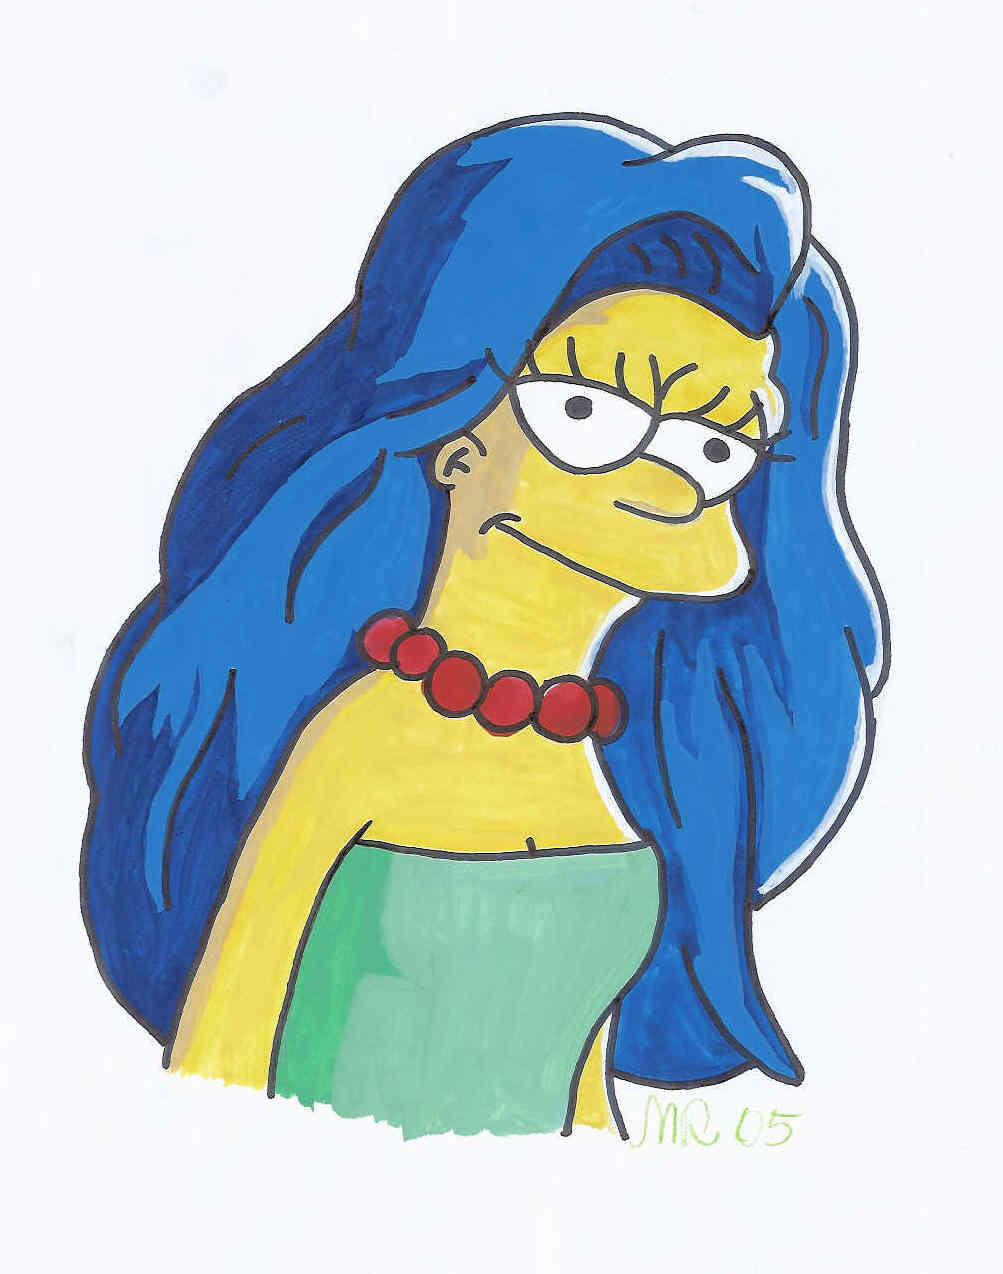 marge simson